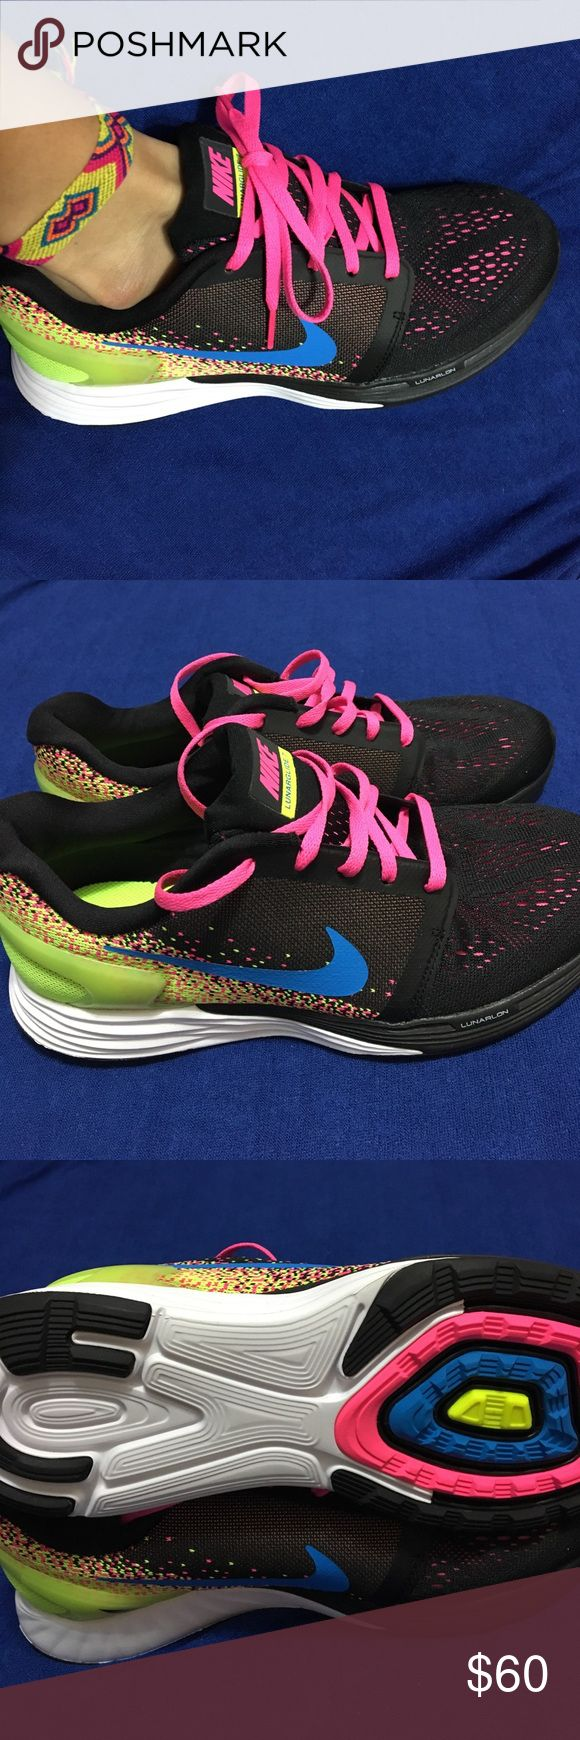 Nike Lunarglide 7 GS Kids Running Shoes Sneakers size 6 big boys/ 7.5 women's. Nike Shoes Athletic Shoes